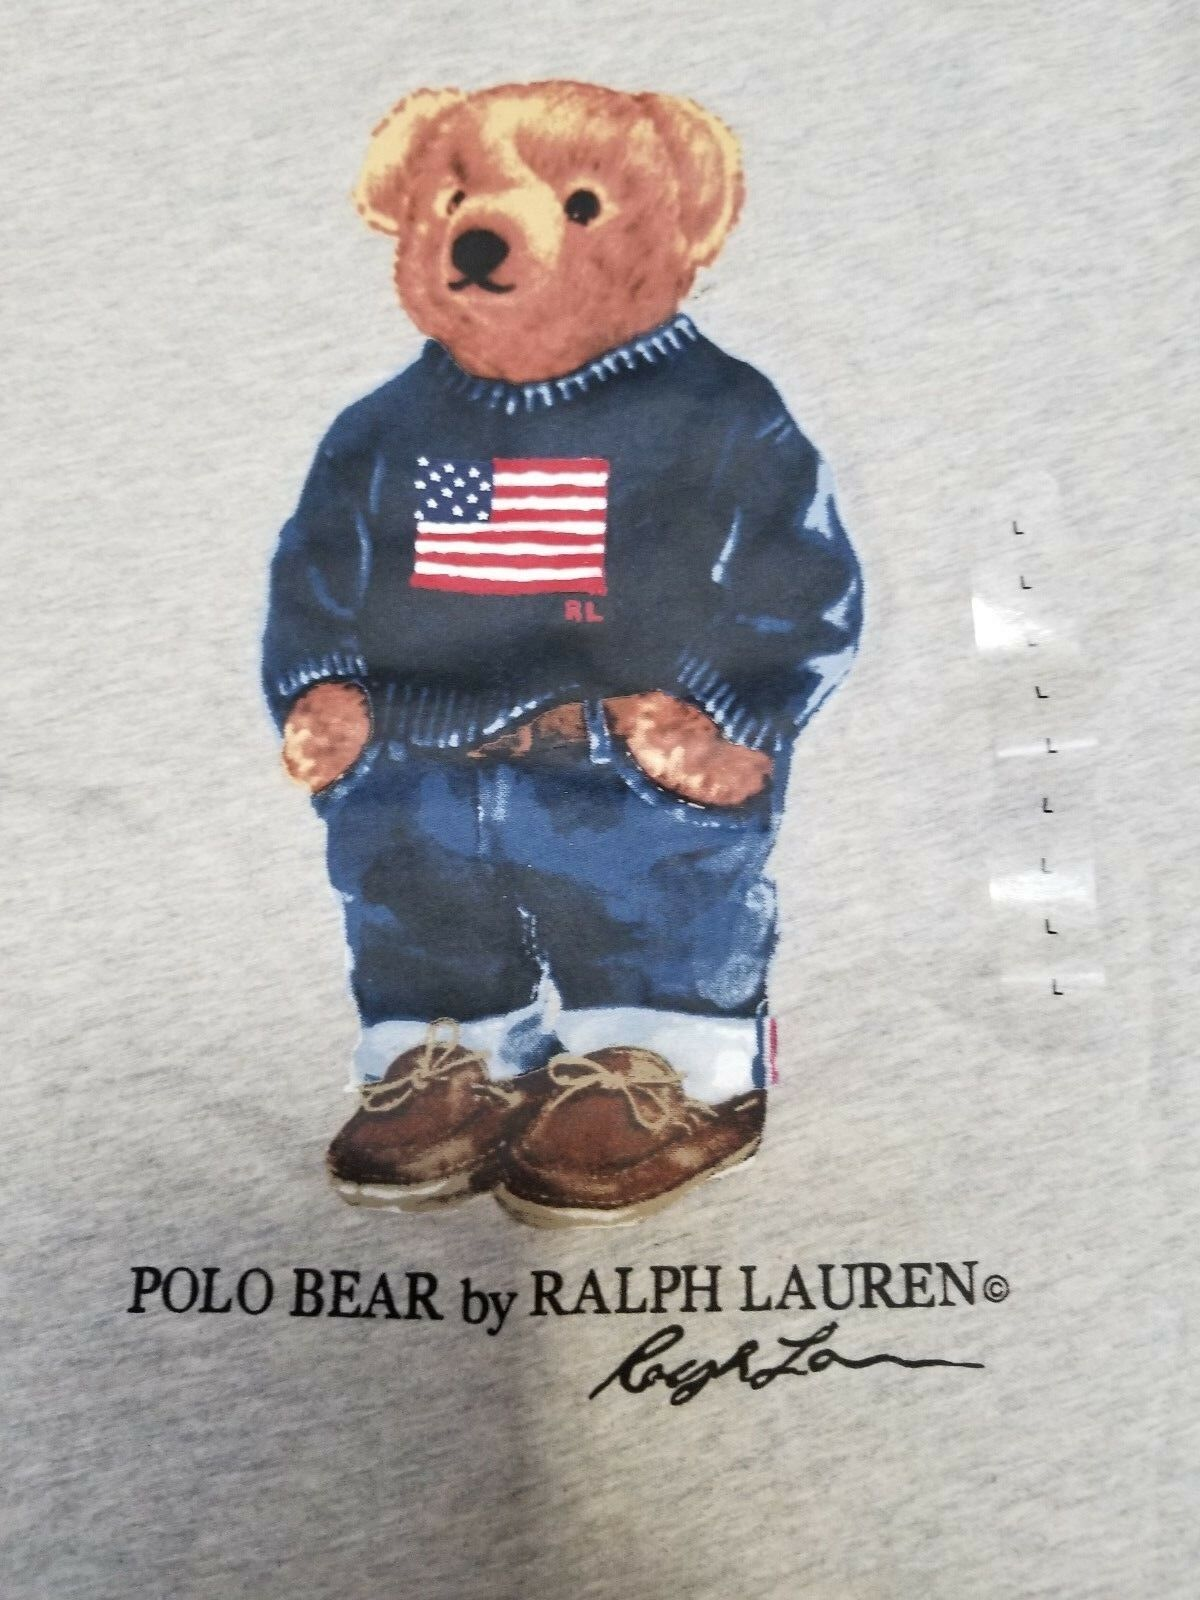 NEW  Herren Polo Ralph Lauren Limited Edition USA Flag Polo Bear T Shirt Great Gift